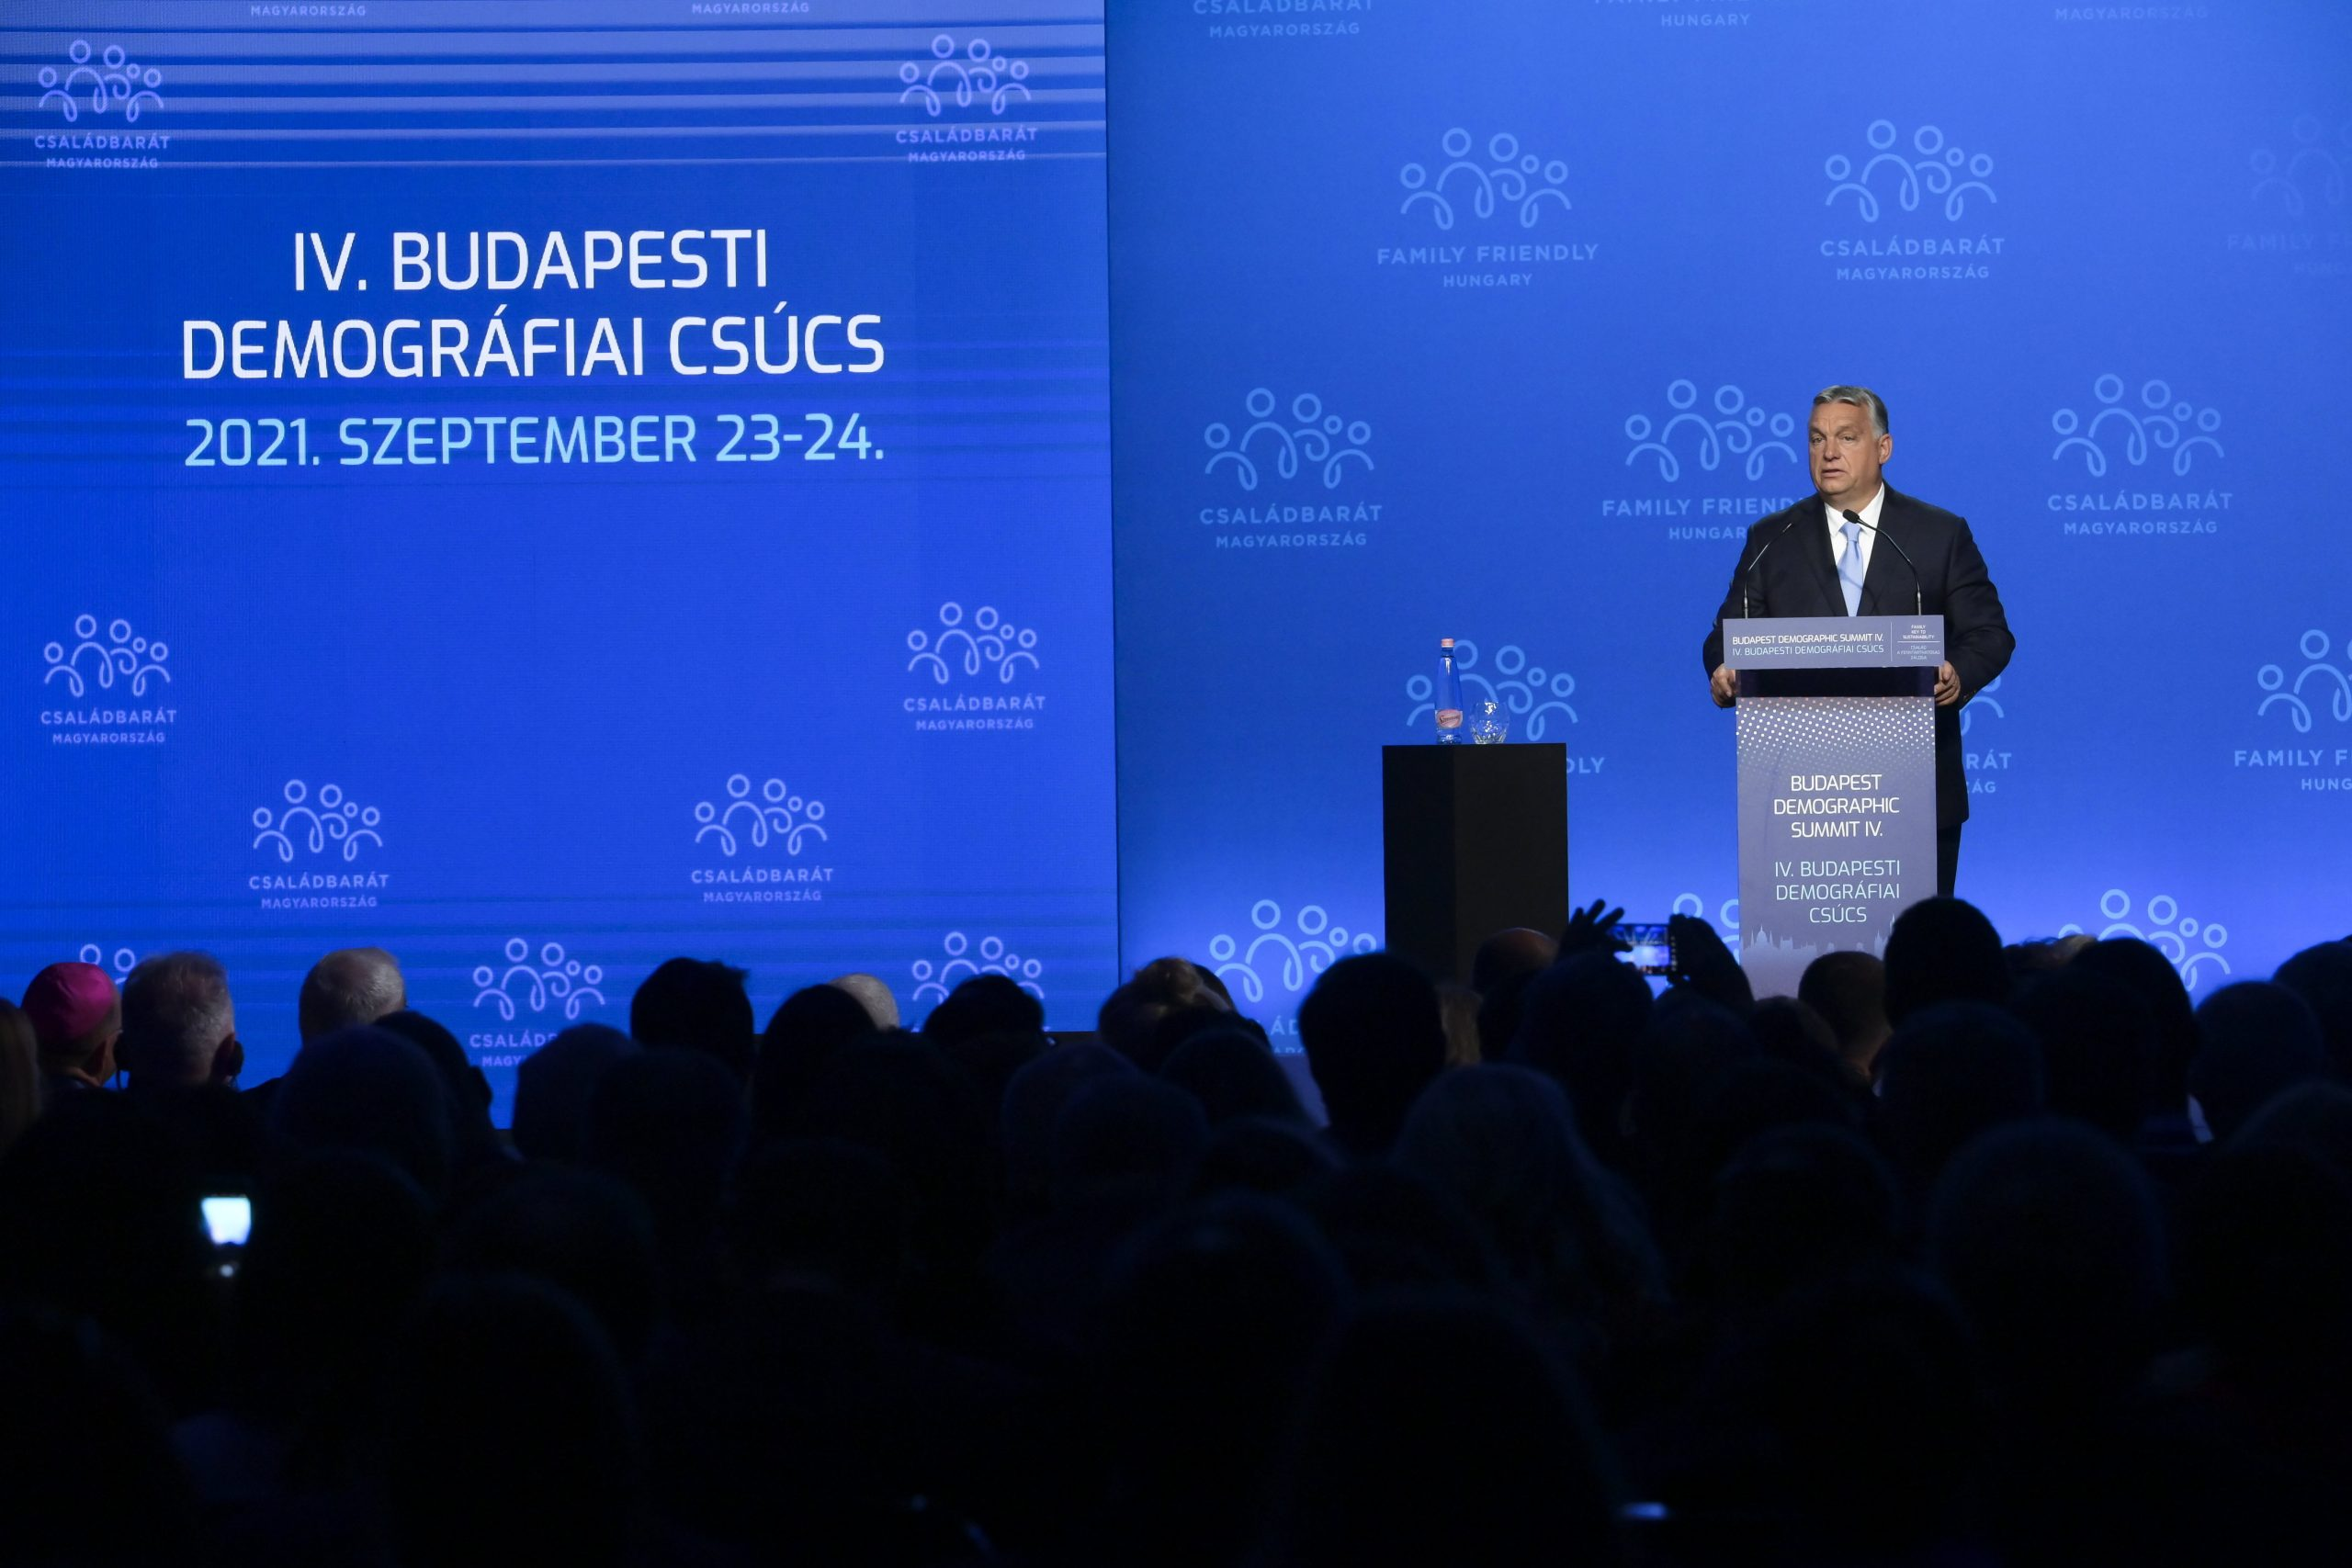 PM Orbán at Demographic Summit: West 'Unwilling to Sustain Itself'